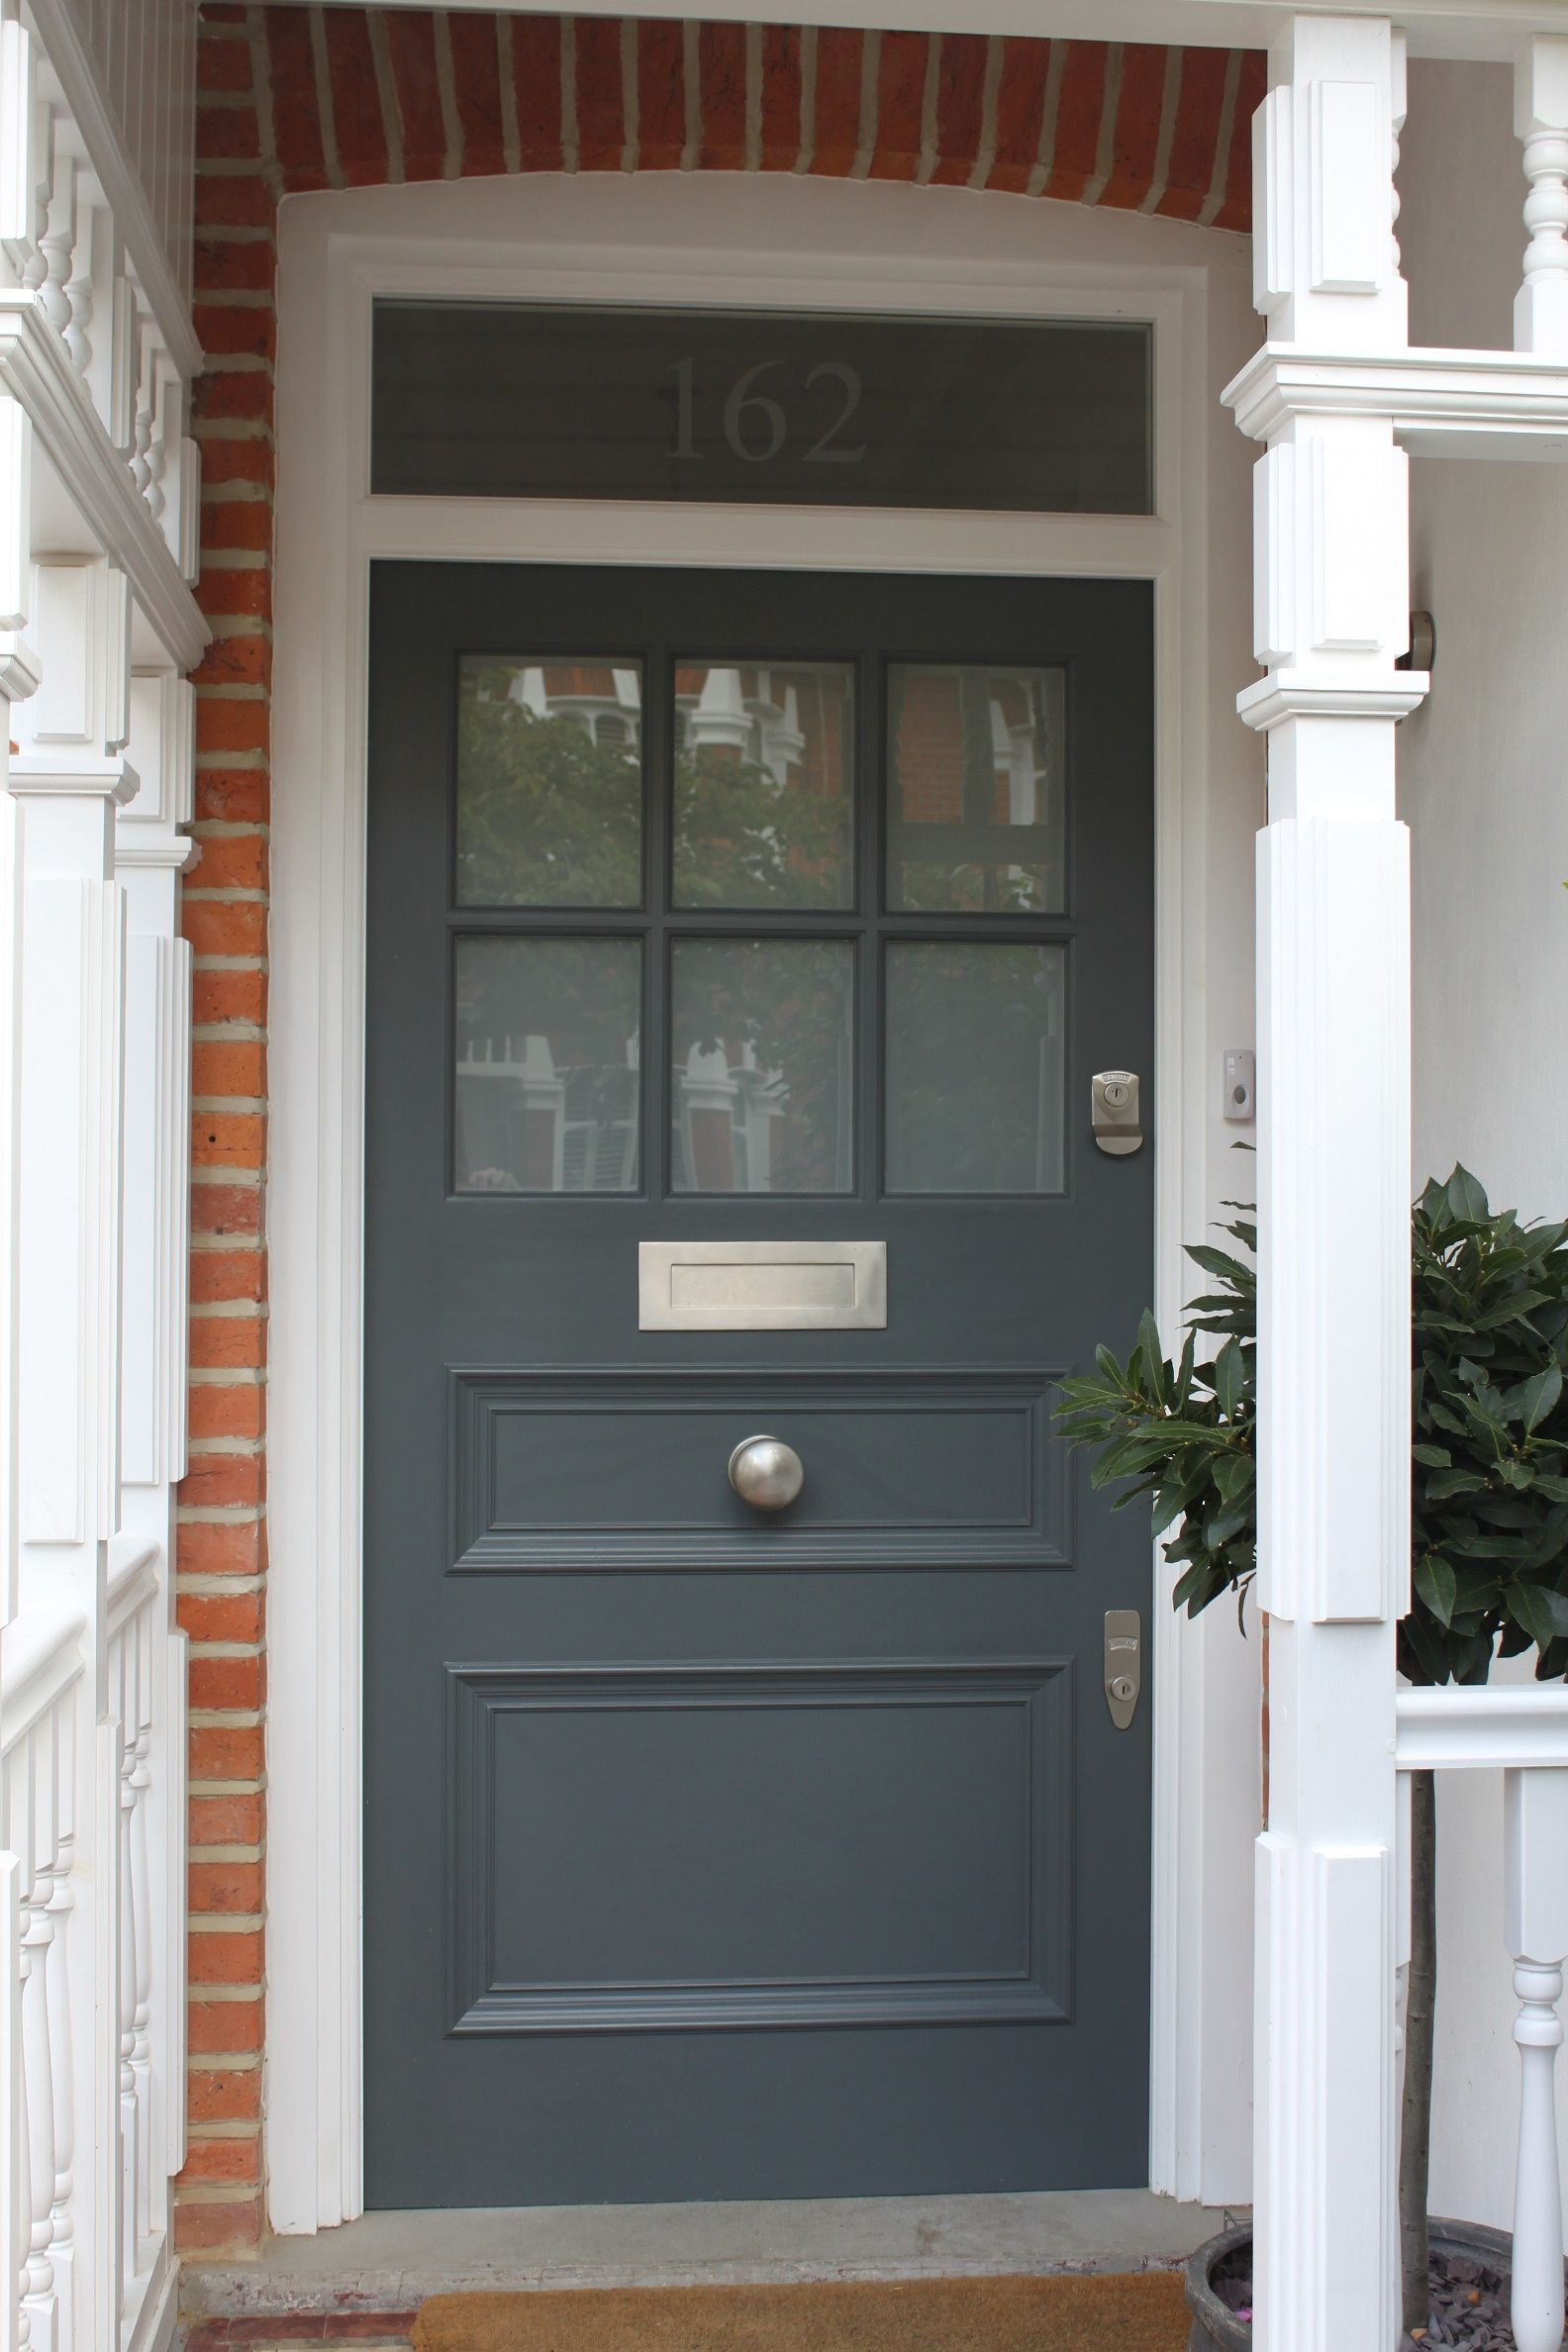 1930s-door-resized.jpg 1,584×2,376 pixels | Front Door | Pinterest ...